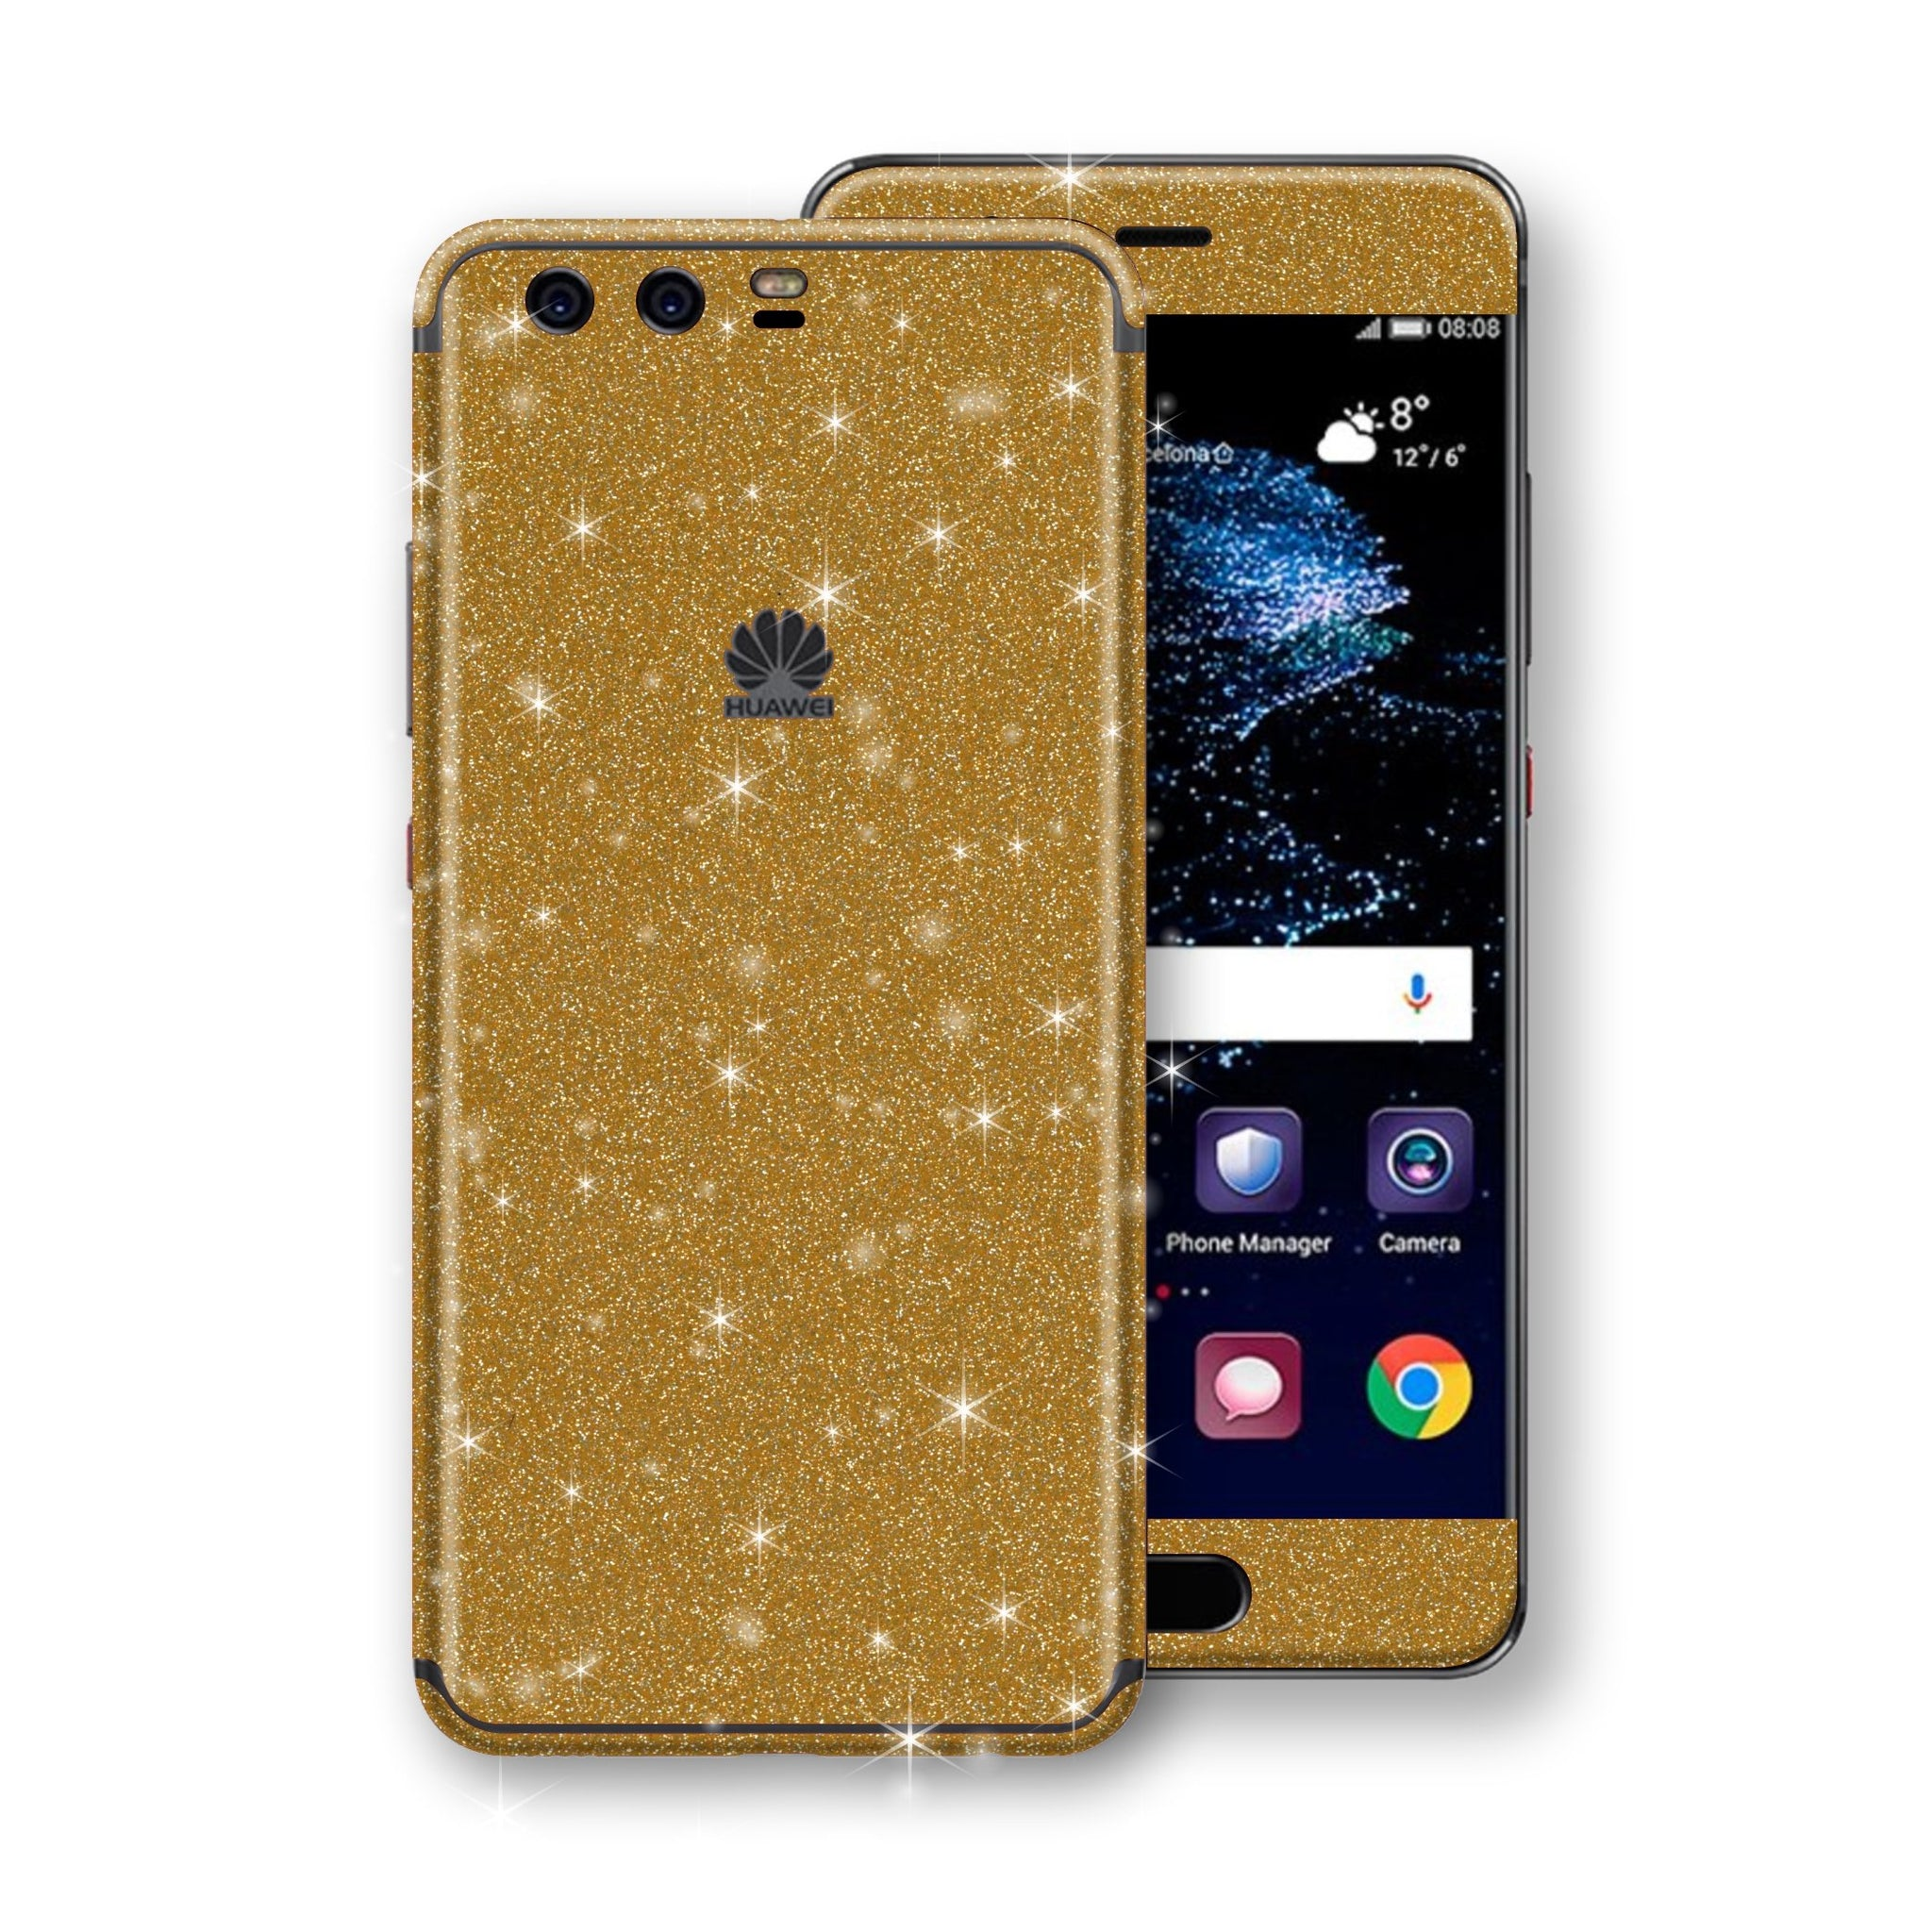 Huawei P10  Diamond Gold Shimmering, Sparkling, Glitter Skin, Decal, Wrap, Protector, Cover by EasySkinz | EasySkinz.co